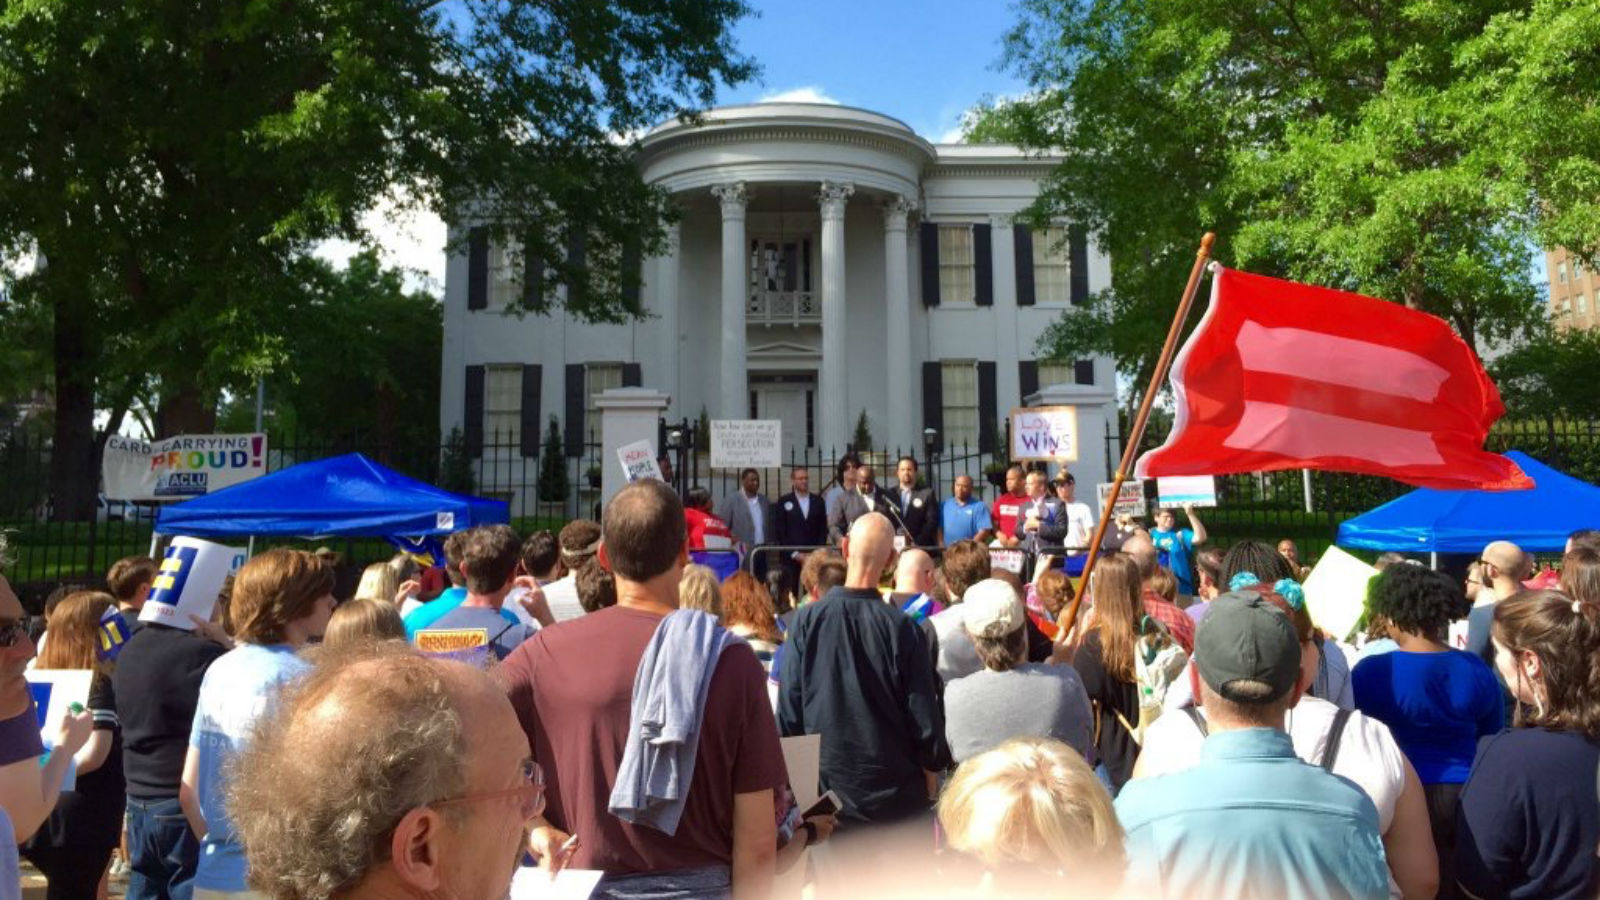 Hundreds Rally in MS to Demand Repeal of Discriminatory H.B. 1523 ... f09838a36